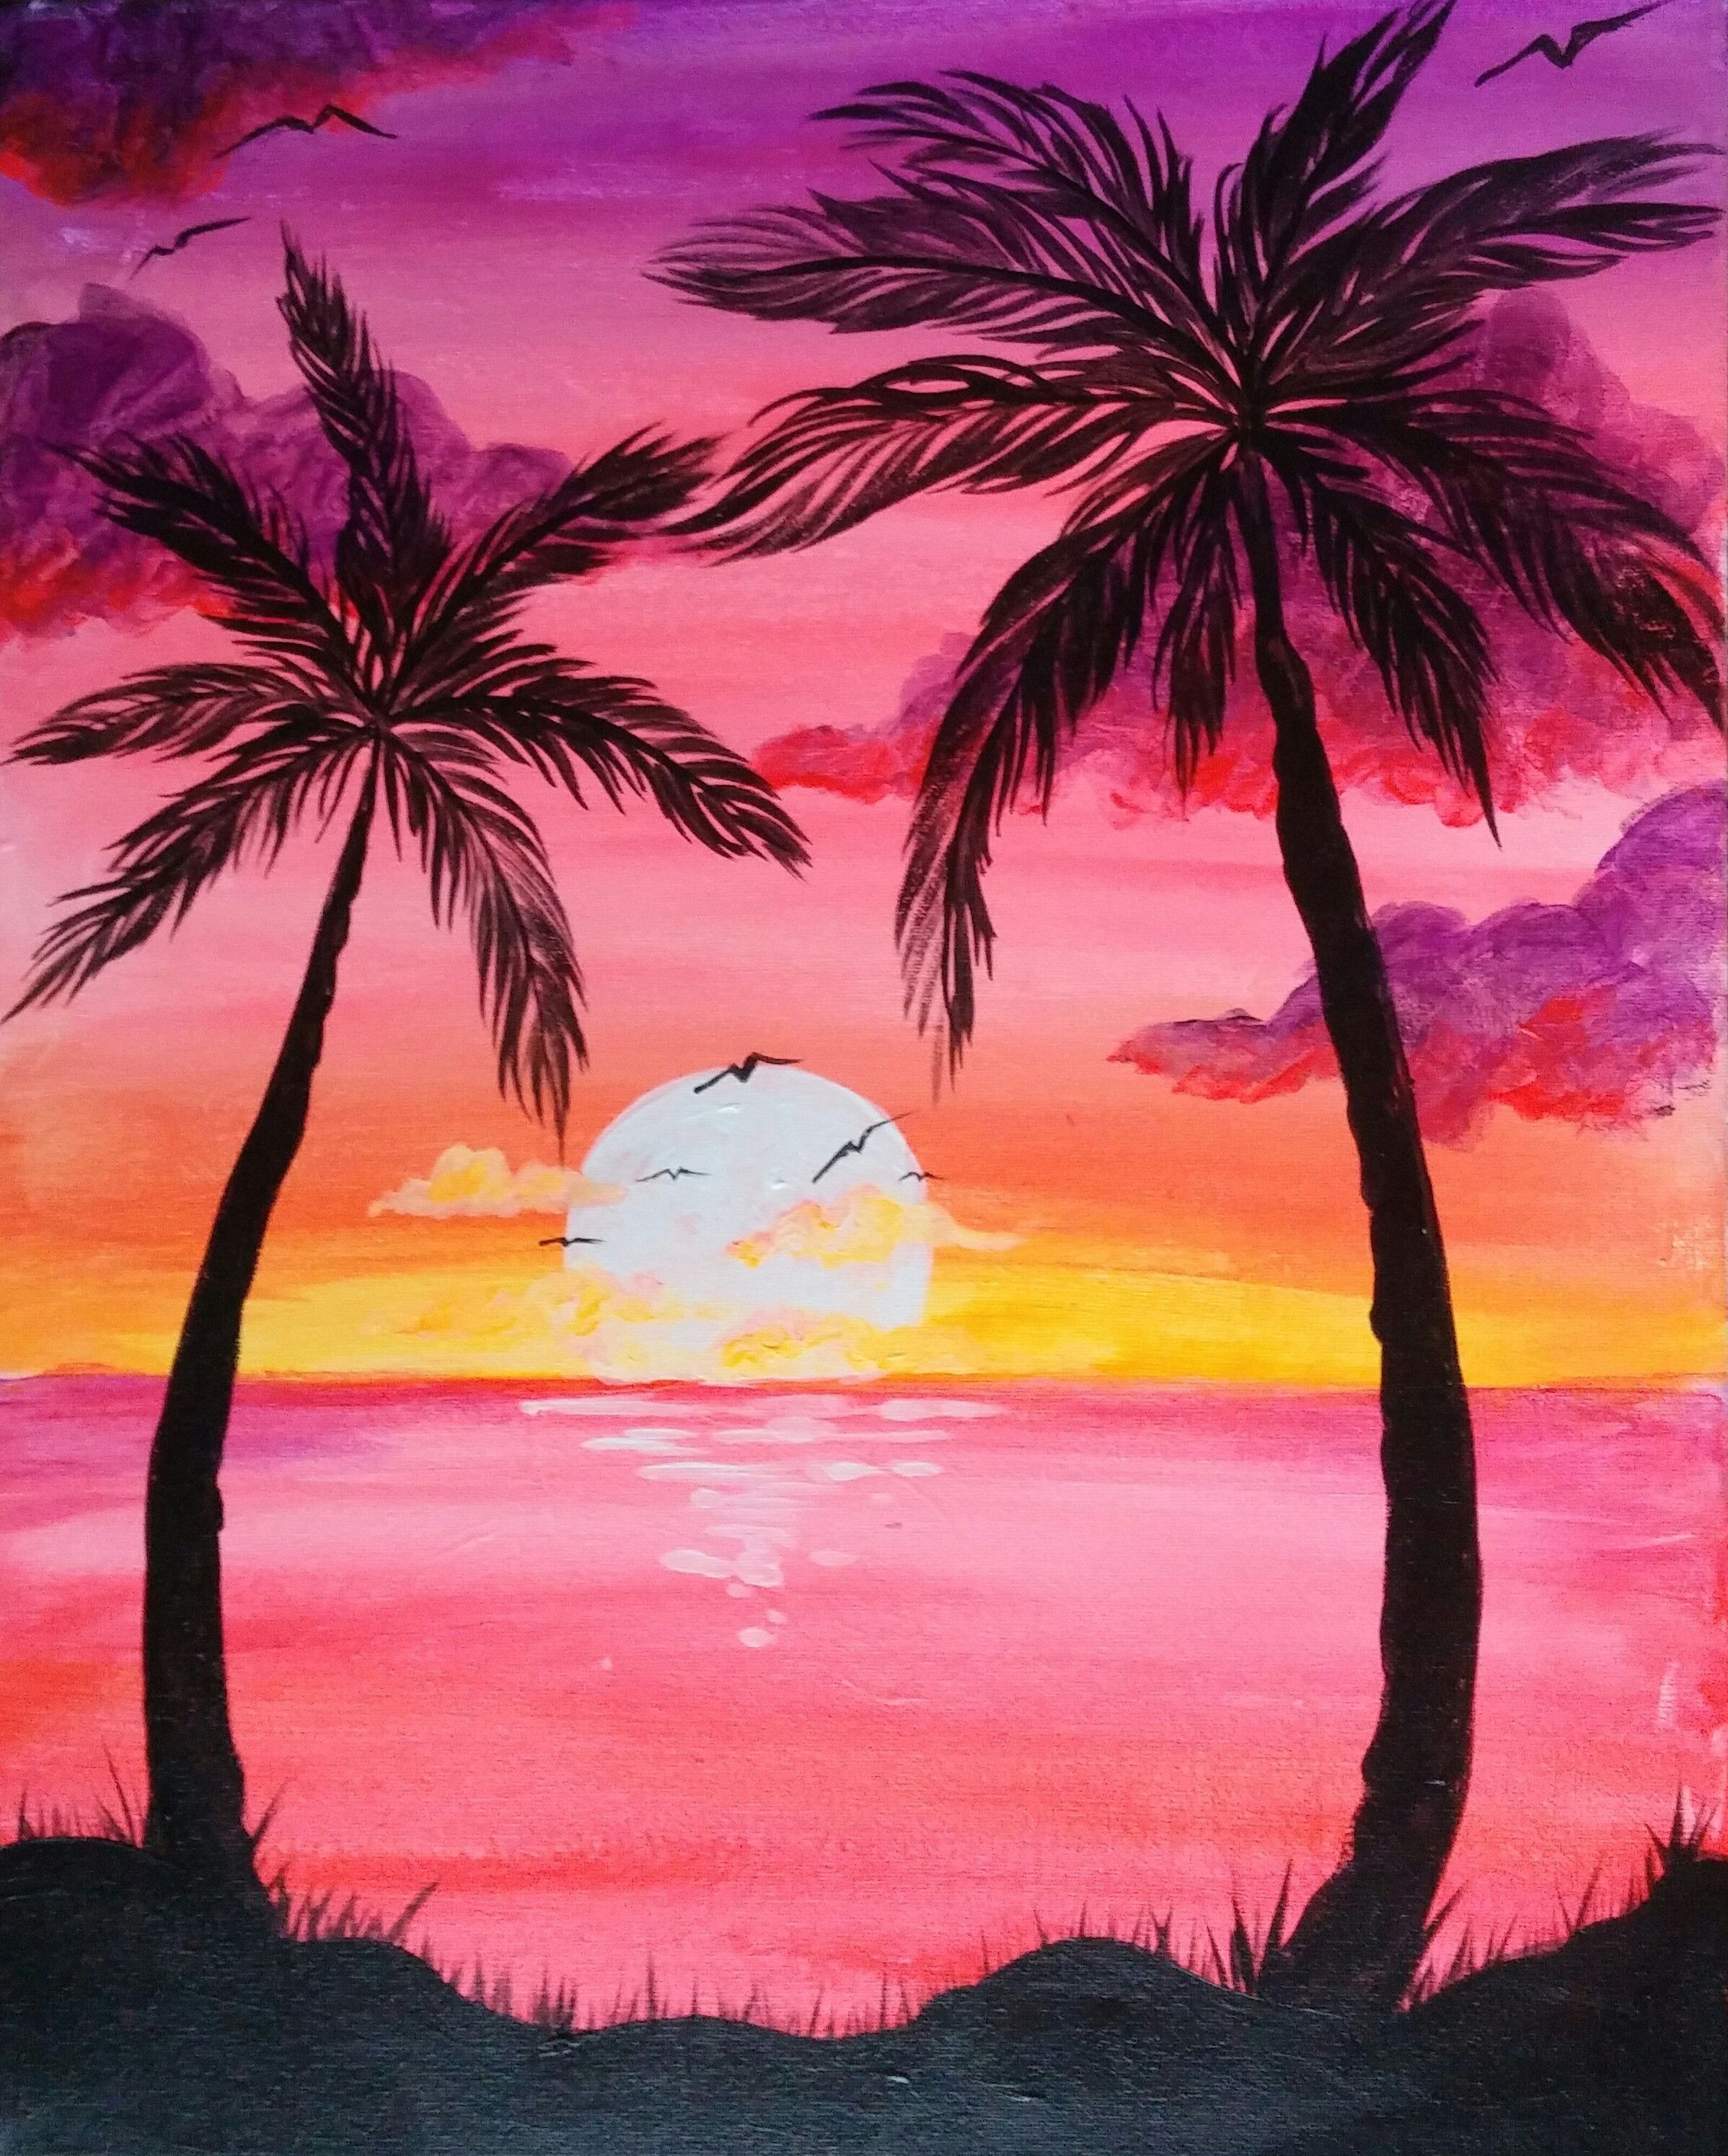 Get Your Friends And Plan A Girls Night Out At Pinot S Palette To Paint Sunset Palms Painting Easy Canvas